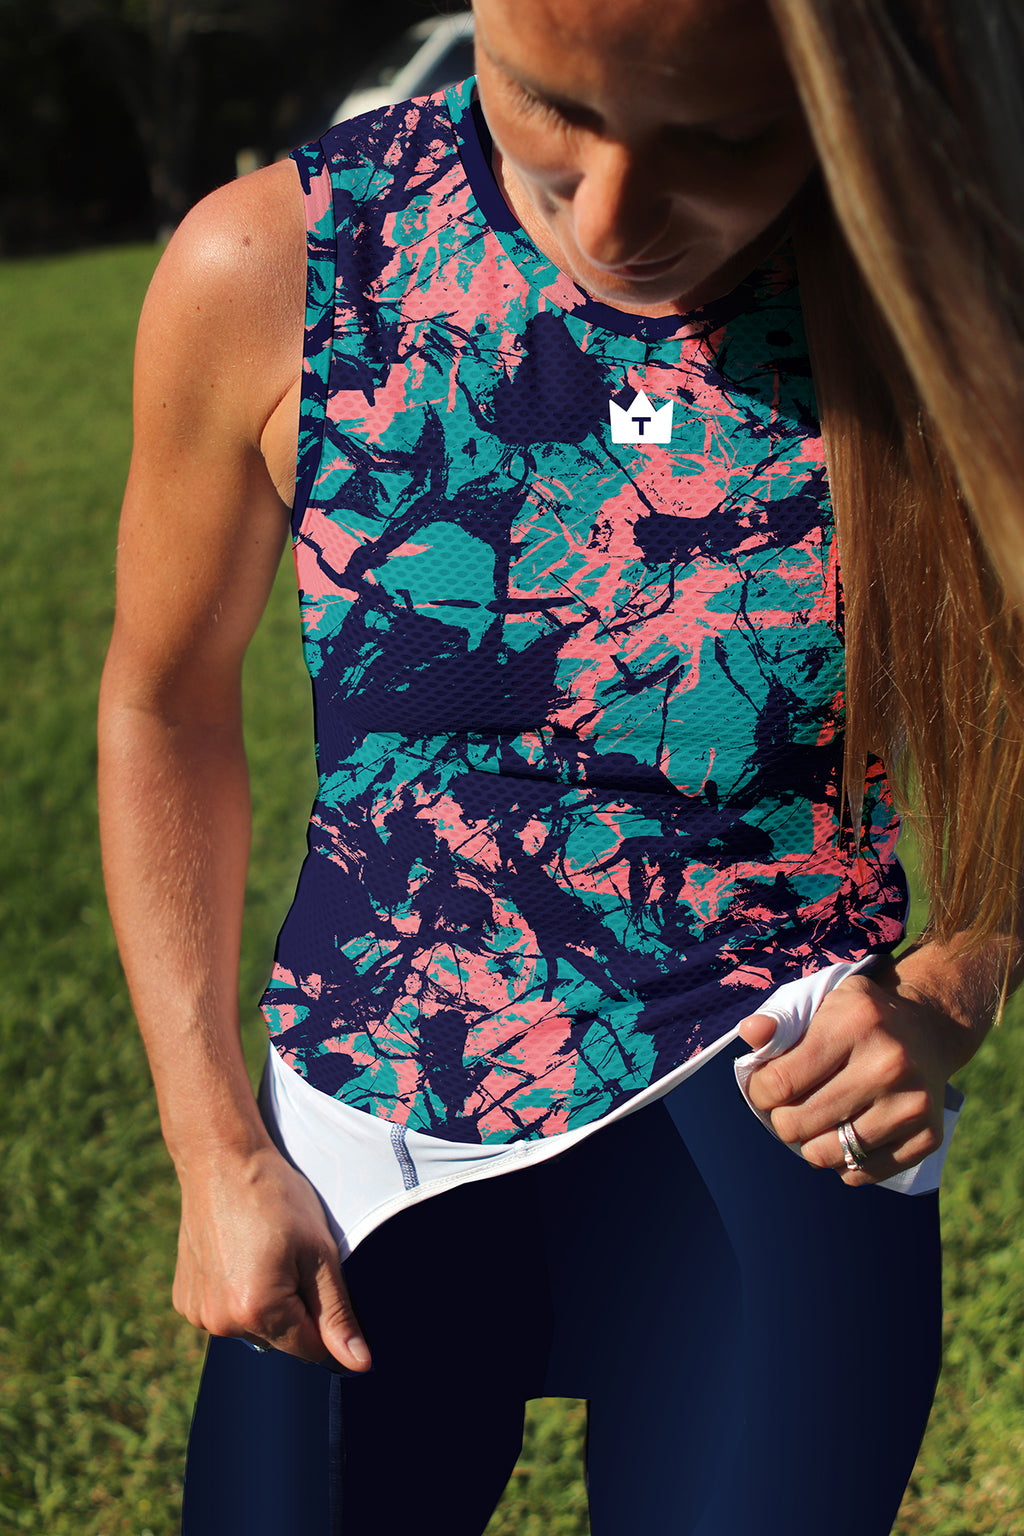 ARMY BAY -- Unisex Base Layer Navy/Teal/Watermelon